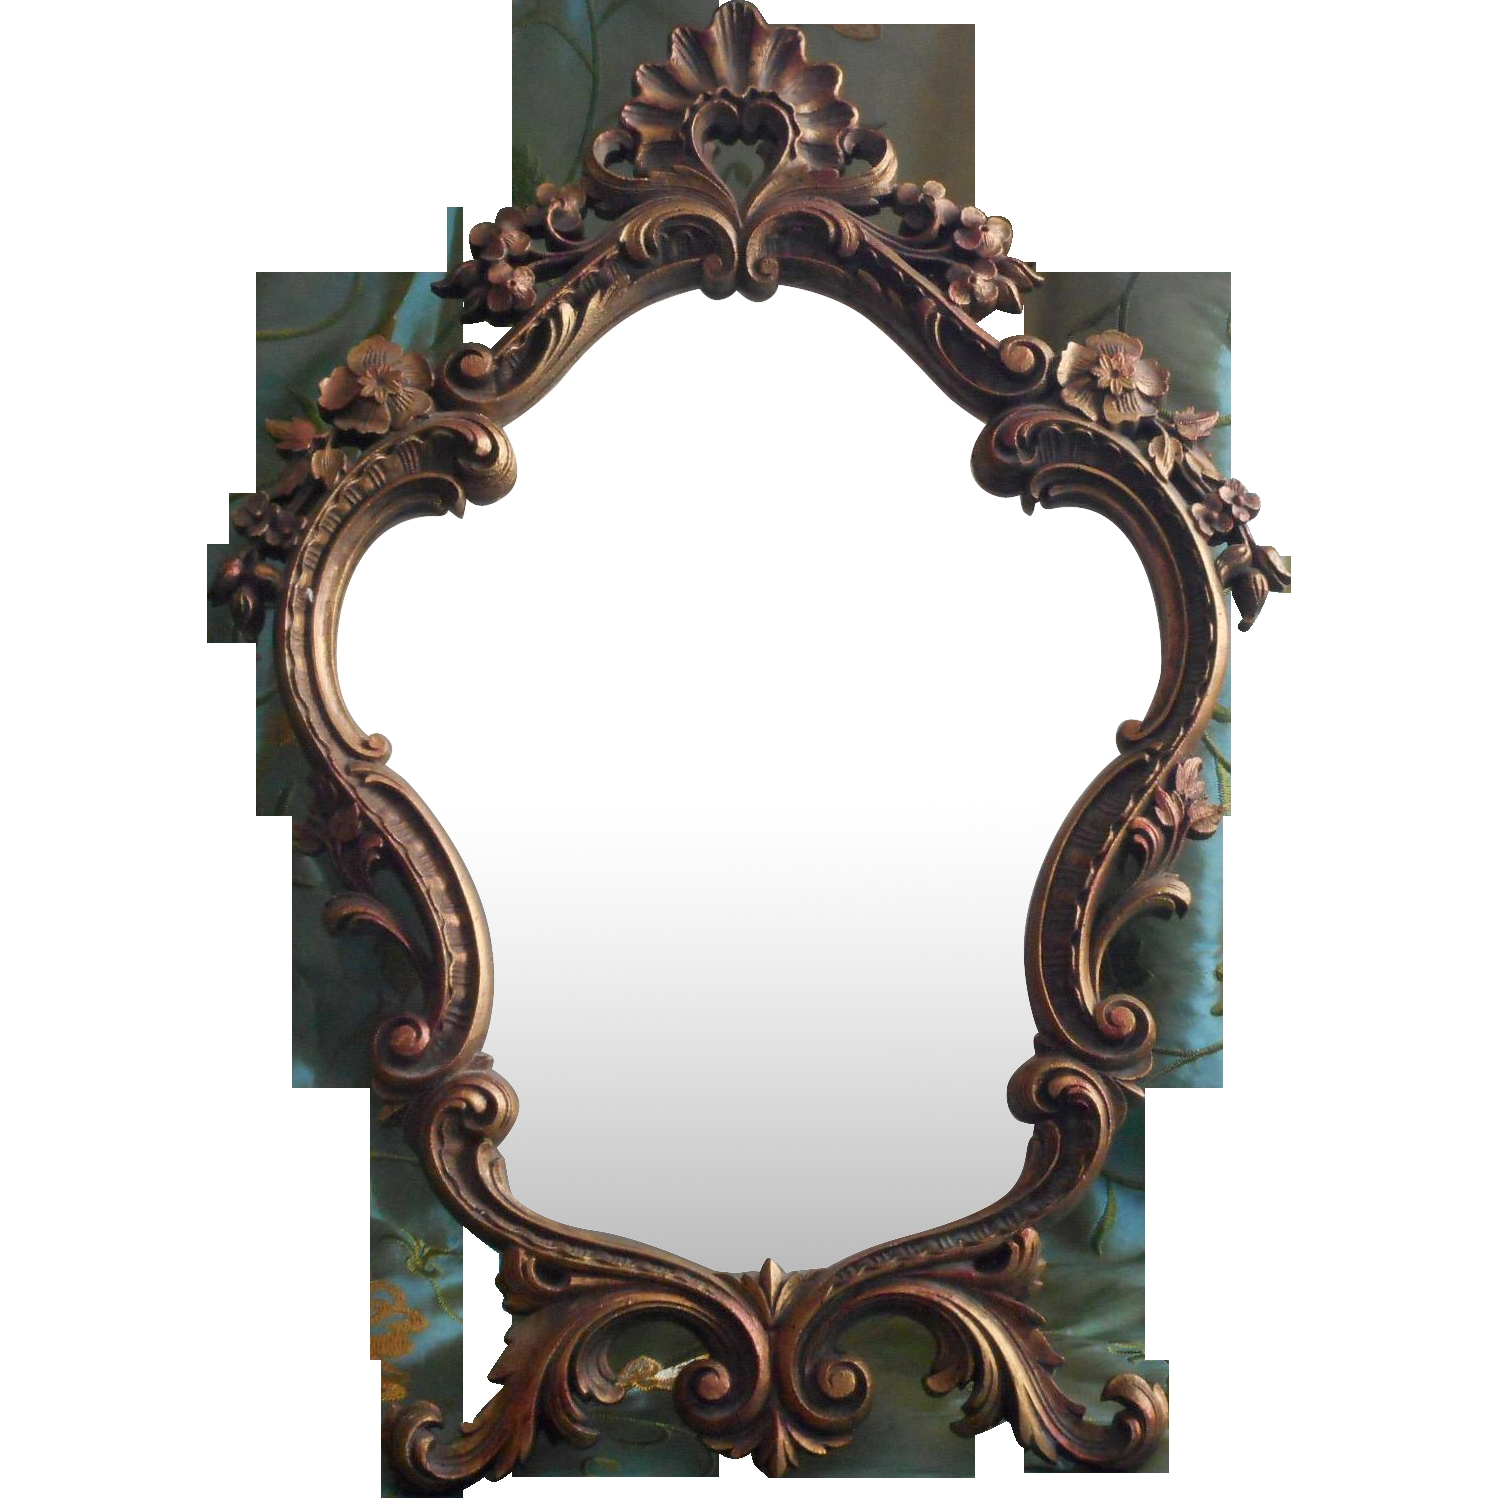 Vintage Ornate Mirror Easel Style Standing Rococo Pressed Wood Intended For Mirror Ornate (Image 11 of 15)